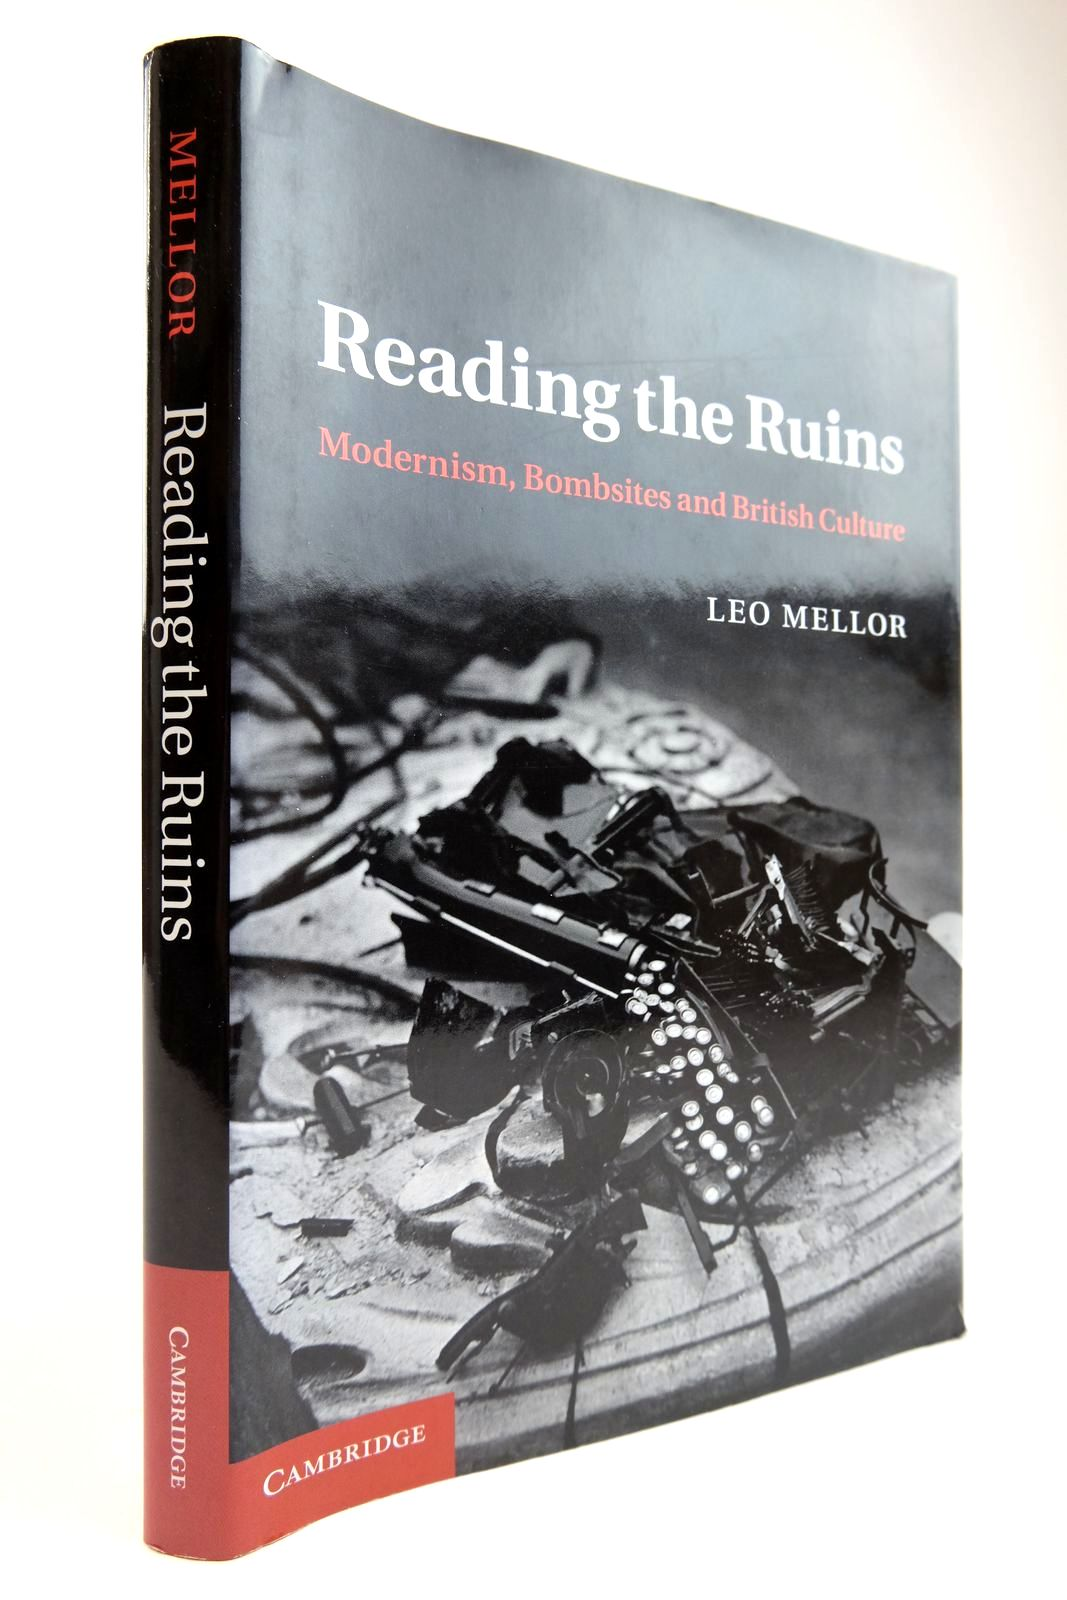 Photo of READING THE RUINS: MODERNISM, BOMBSITES AND BRITISH CULTURE written by Mellor, Leo published by Cambridge University Press (STOCK CODE: 2134010)  for sale by Stella & Rose's Books